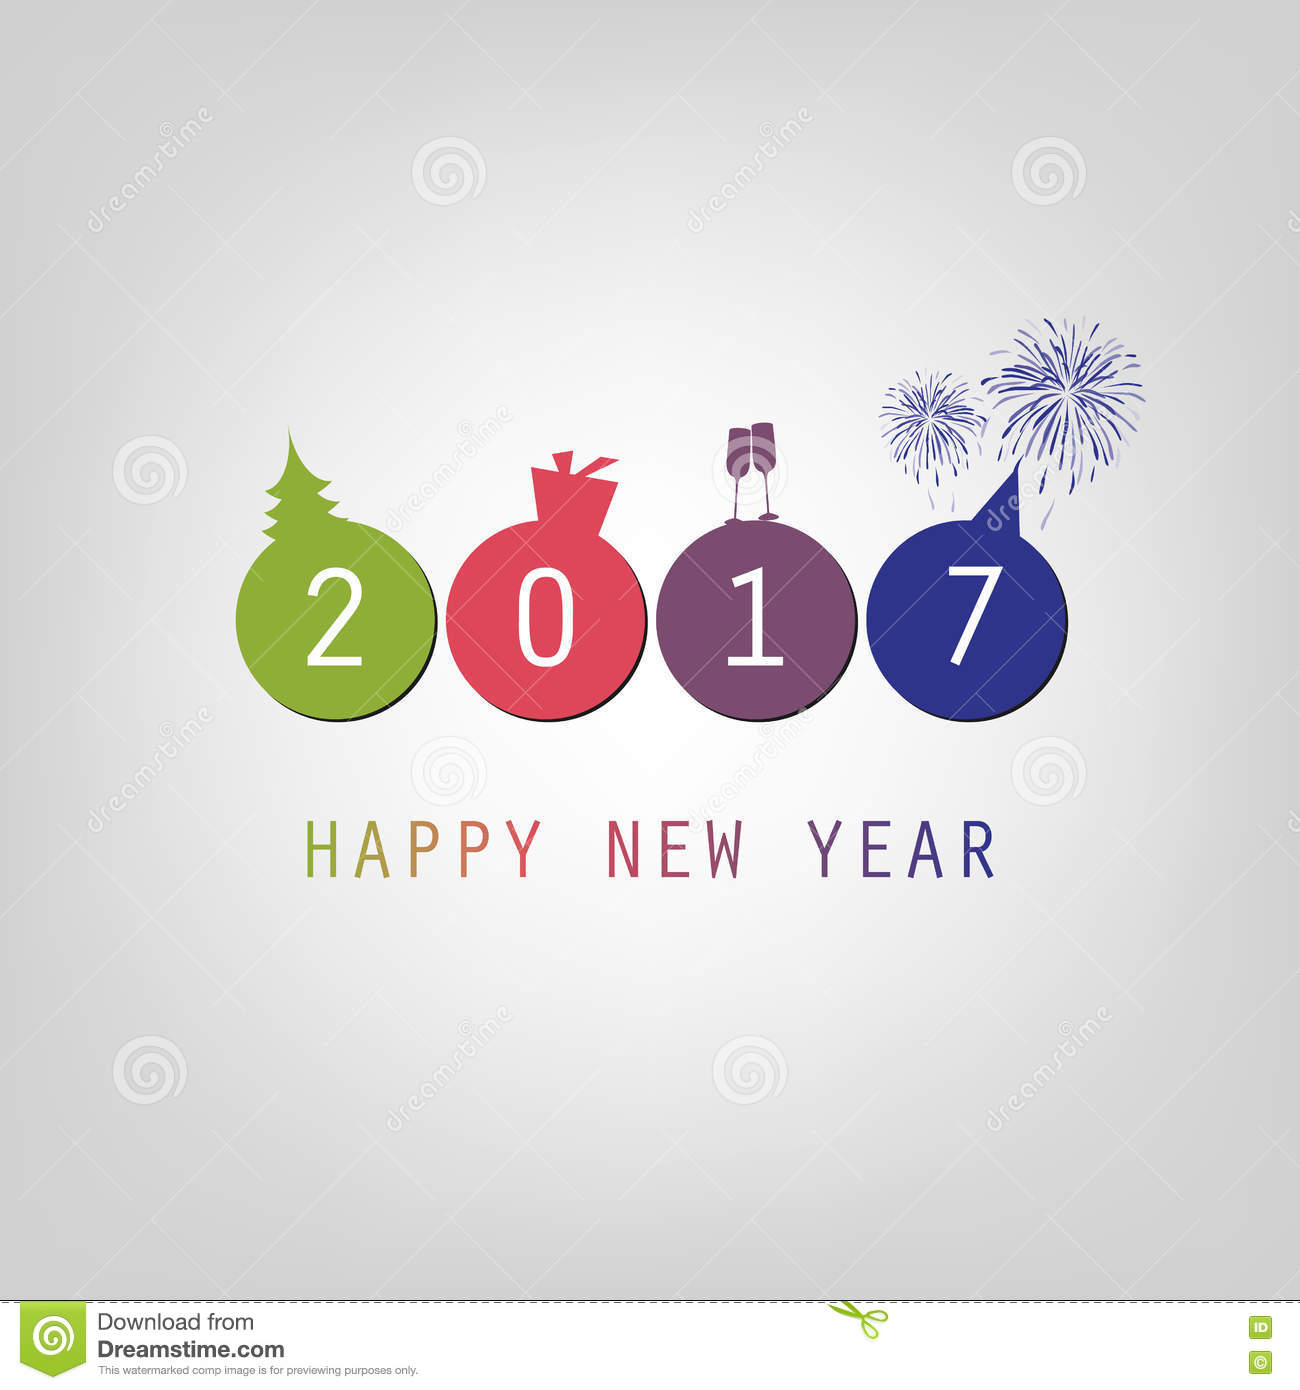 simple new year backgrounds